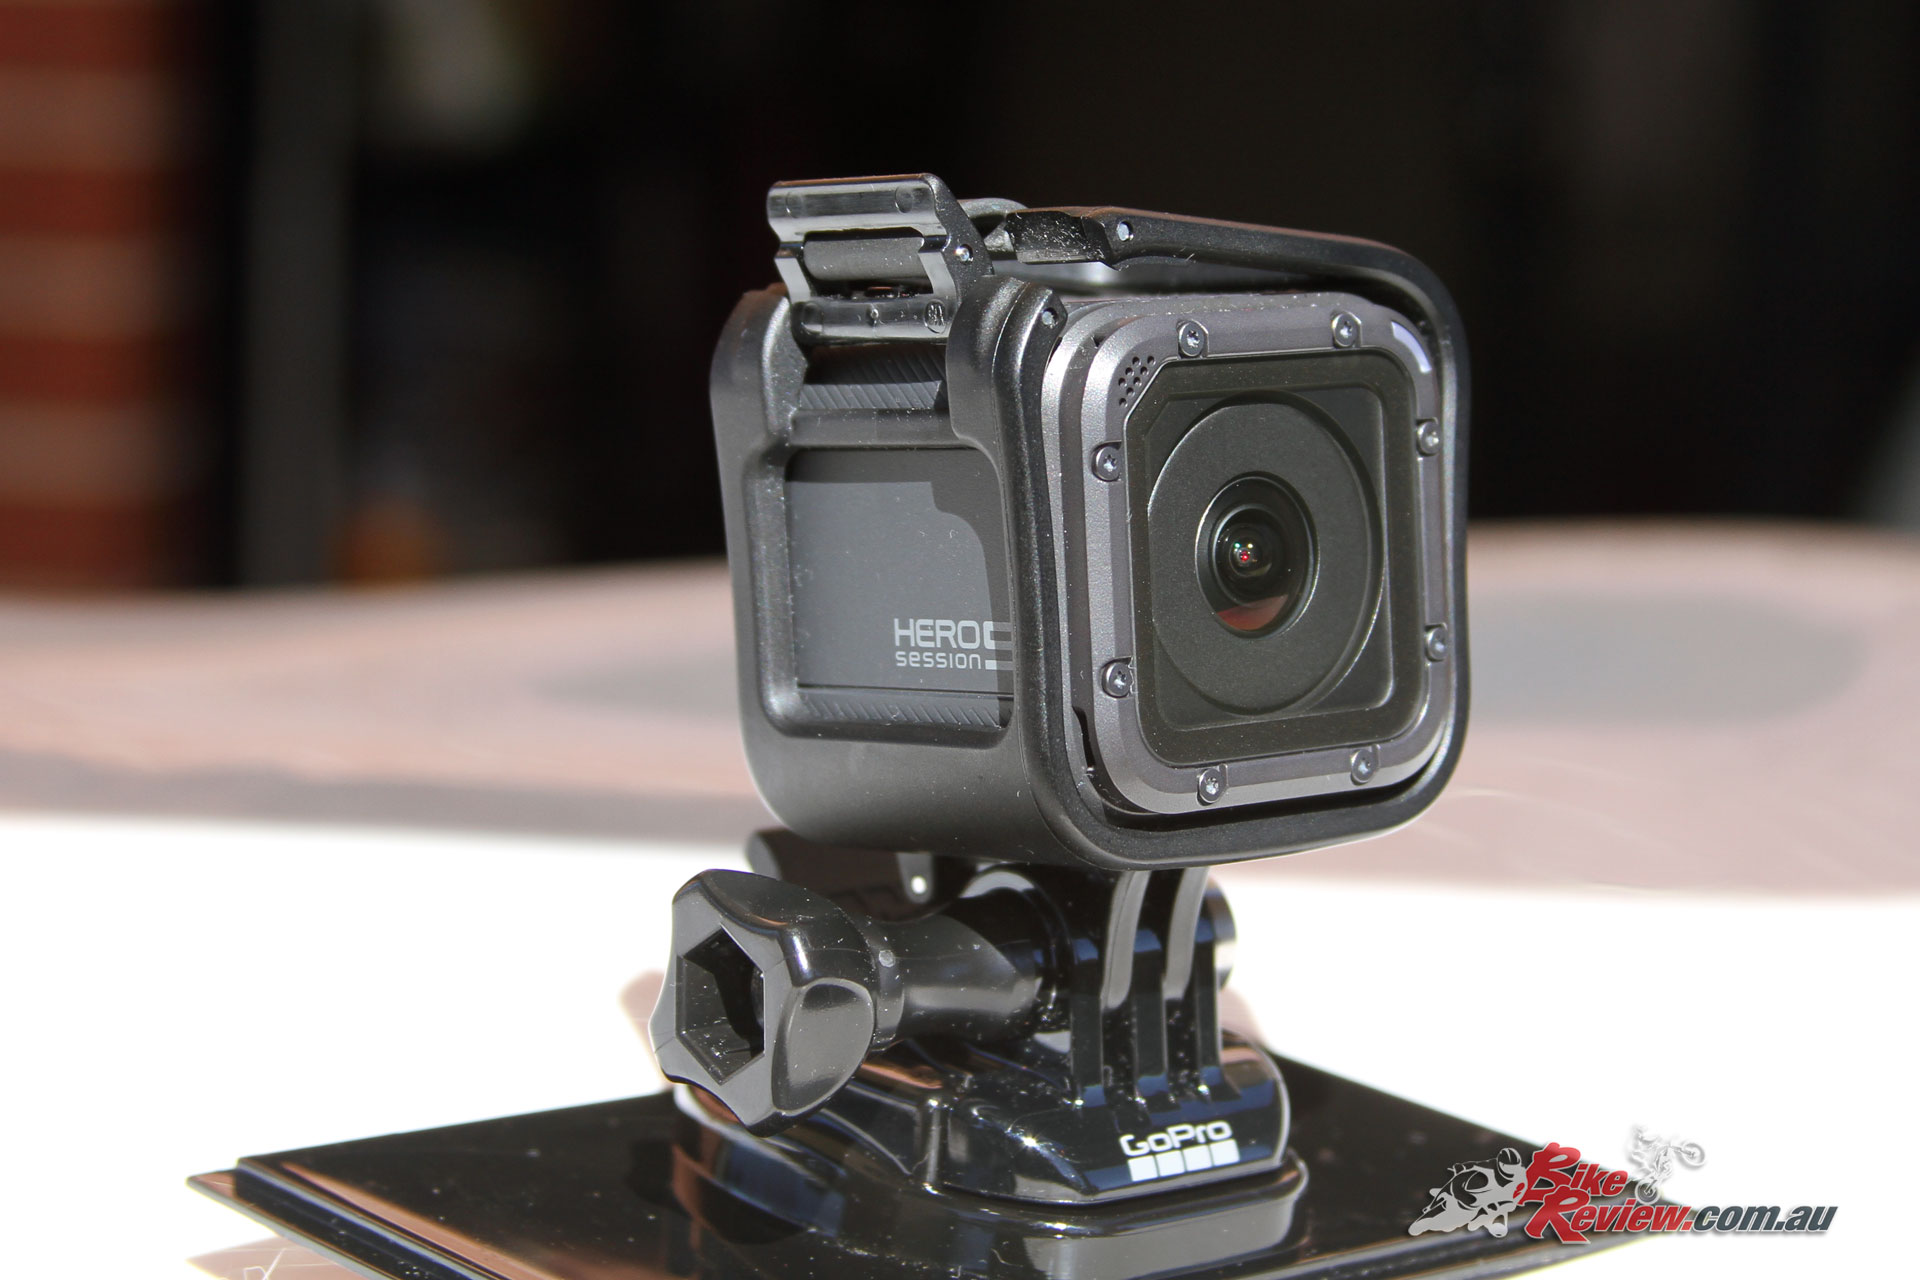 The Hero5 Session is tiny and the cradle doesn't add all that much bulk. It's easily pulled out or re-orientated in the cradle too.